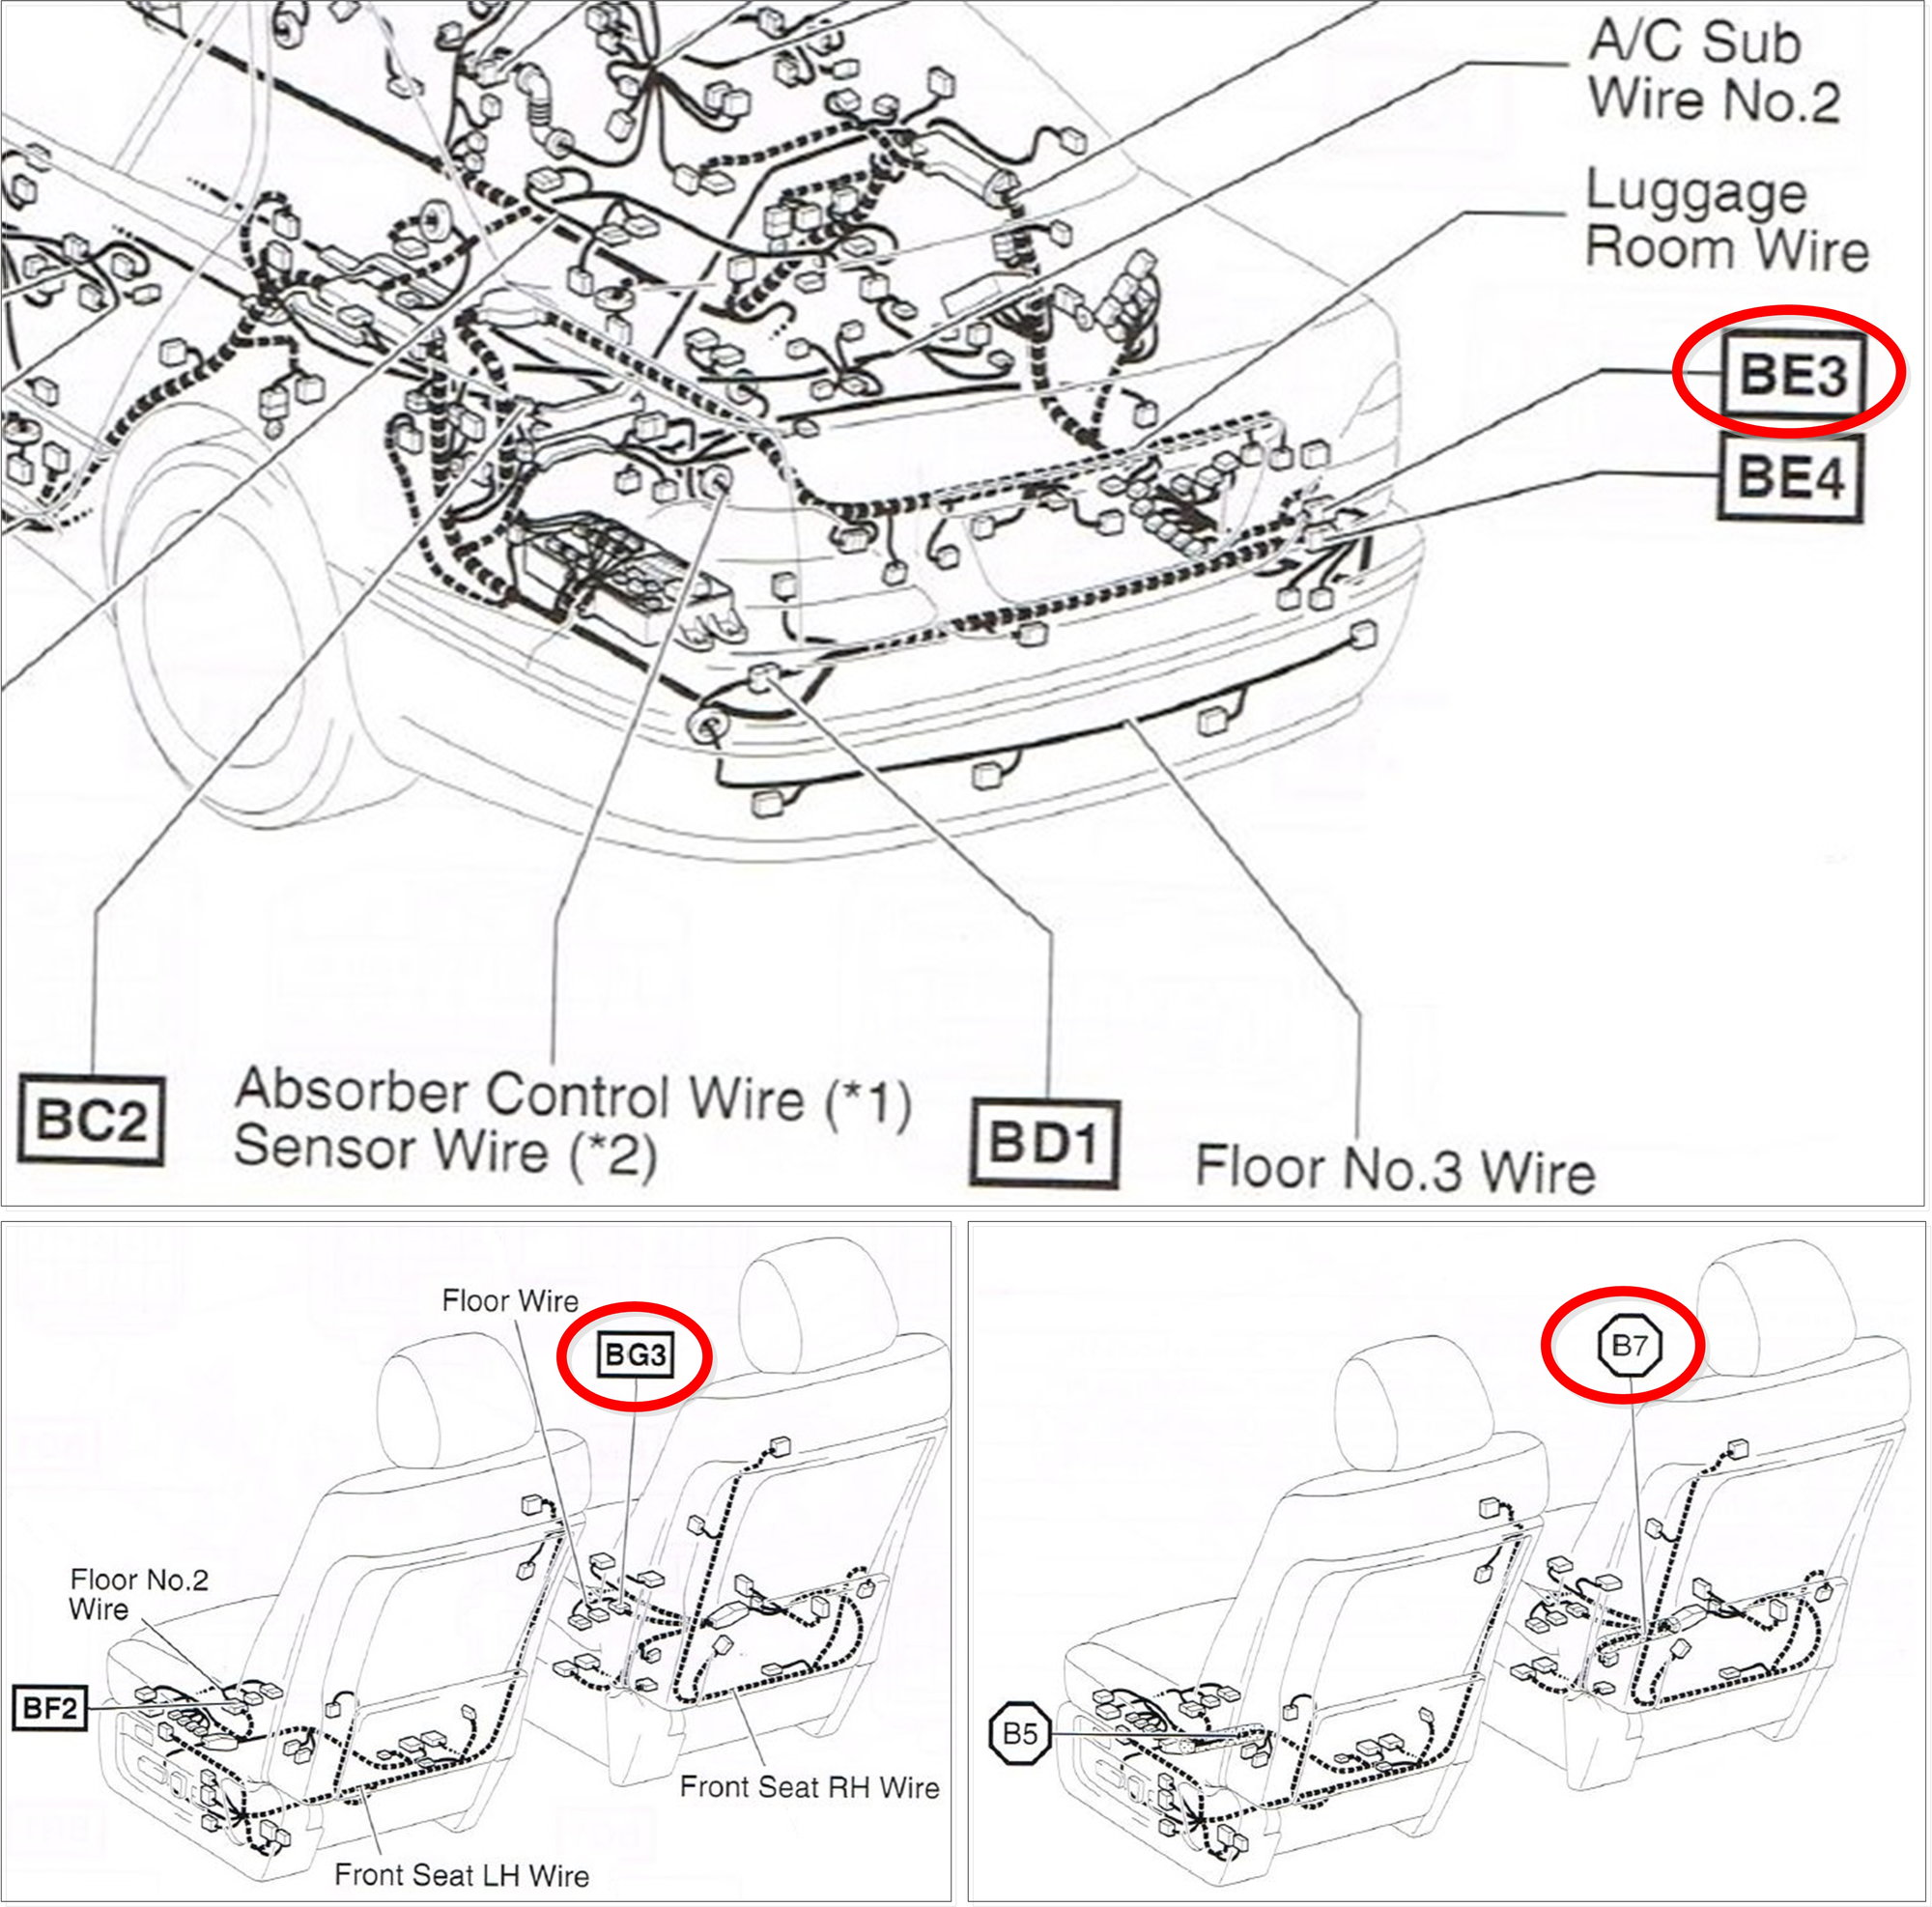 Here are the locations referenced on the wiring diagram: BE3, BG3, and B7